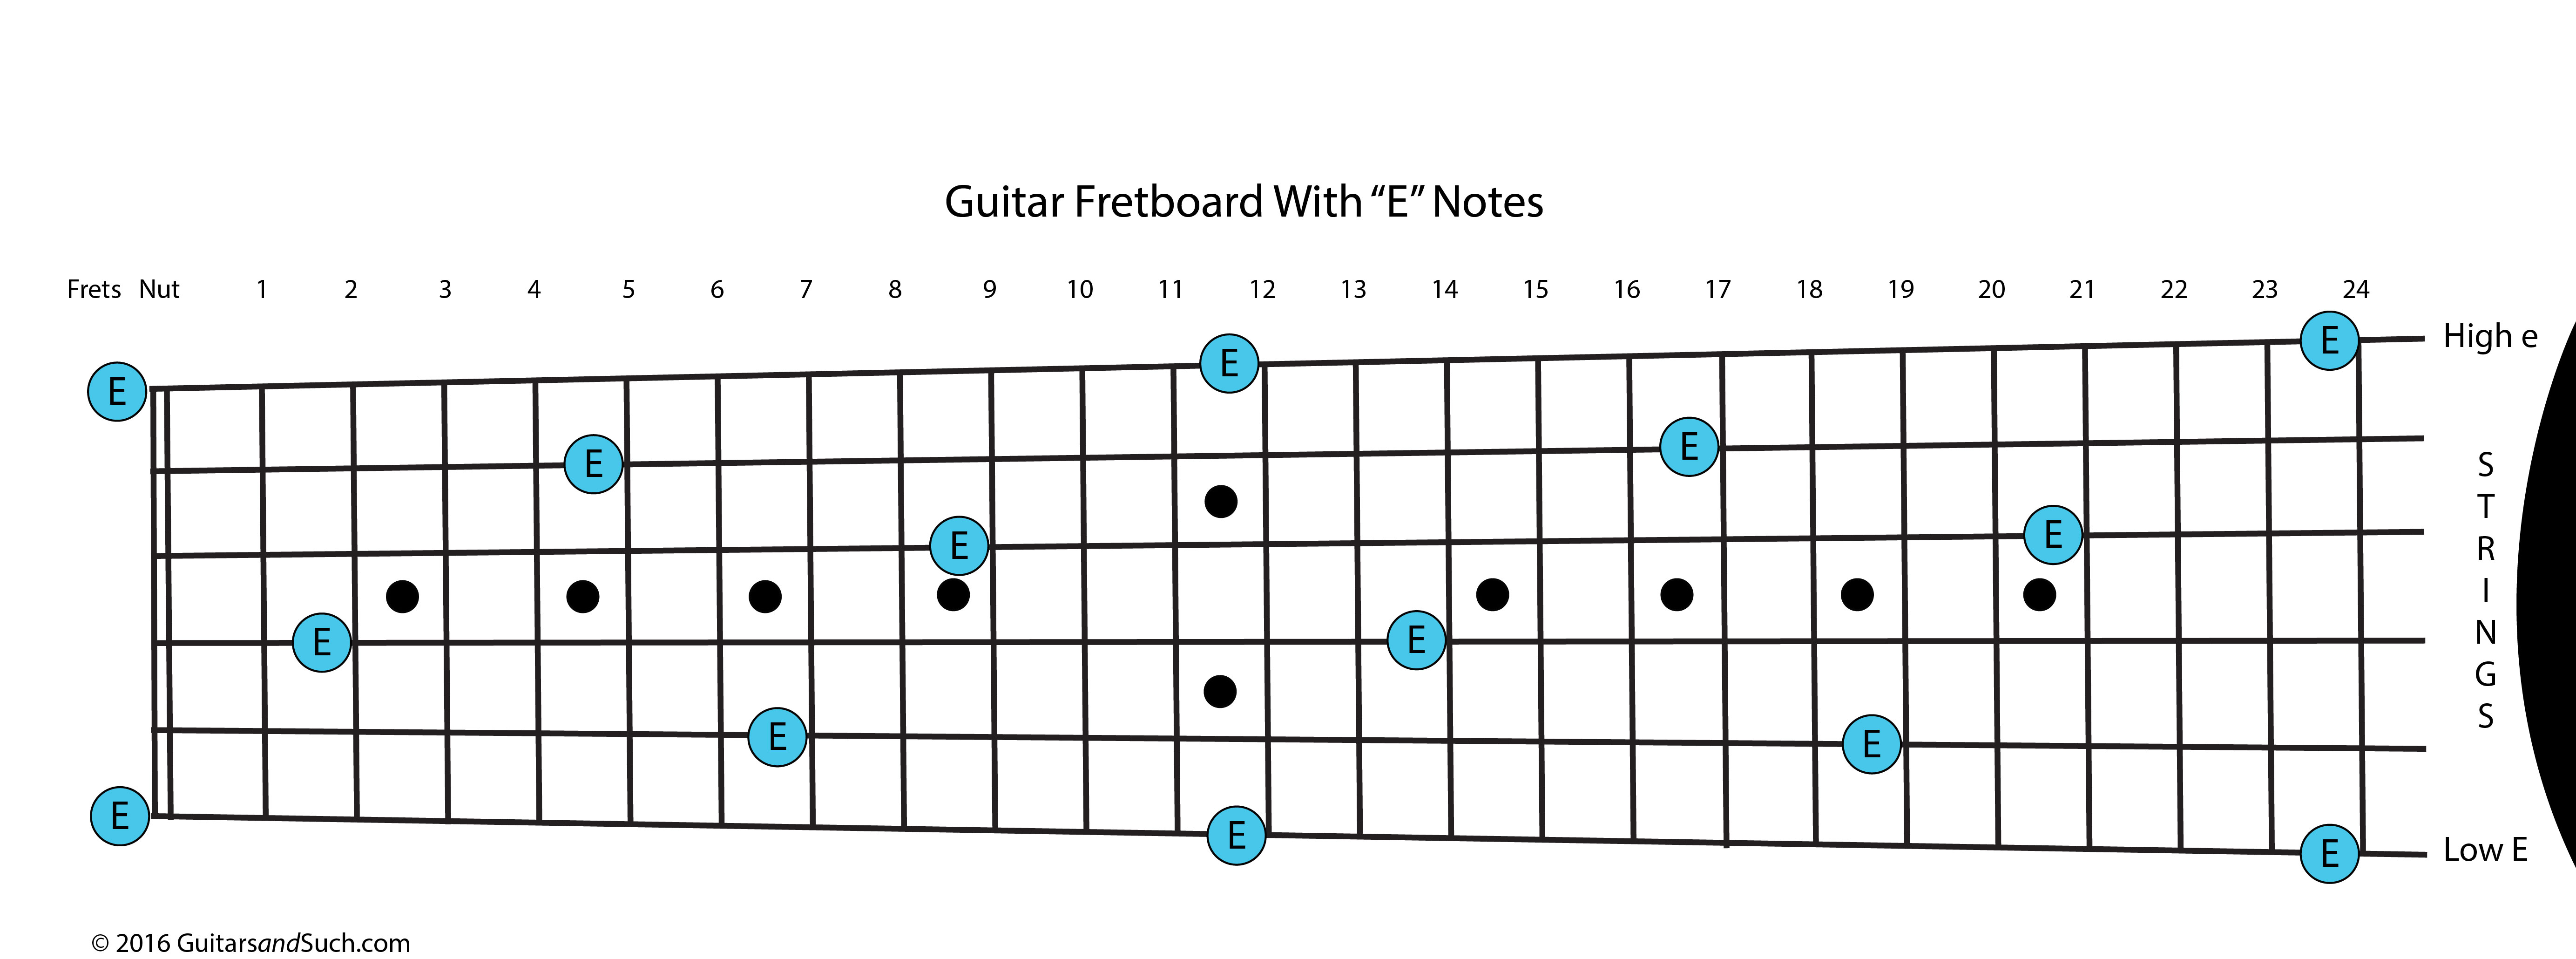 Dovetail template printable guitar - Guitar Fretboard With Frets Numbered And Notes Named